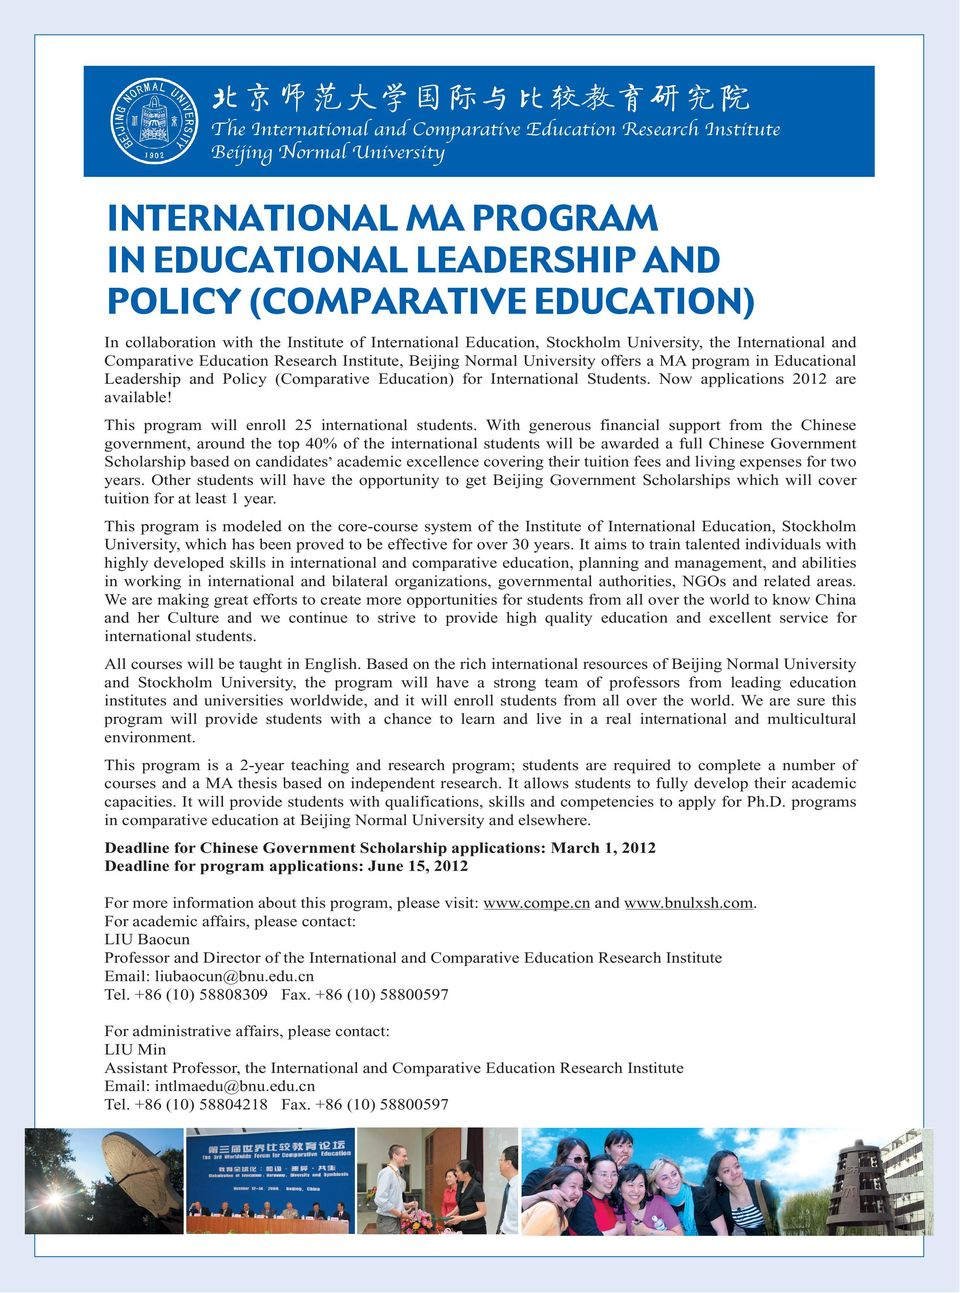 and Policy (Comparative Education) for International Students. Now applications 2012 are available! This program will enroll 25 international students.